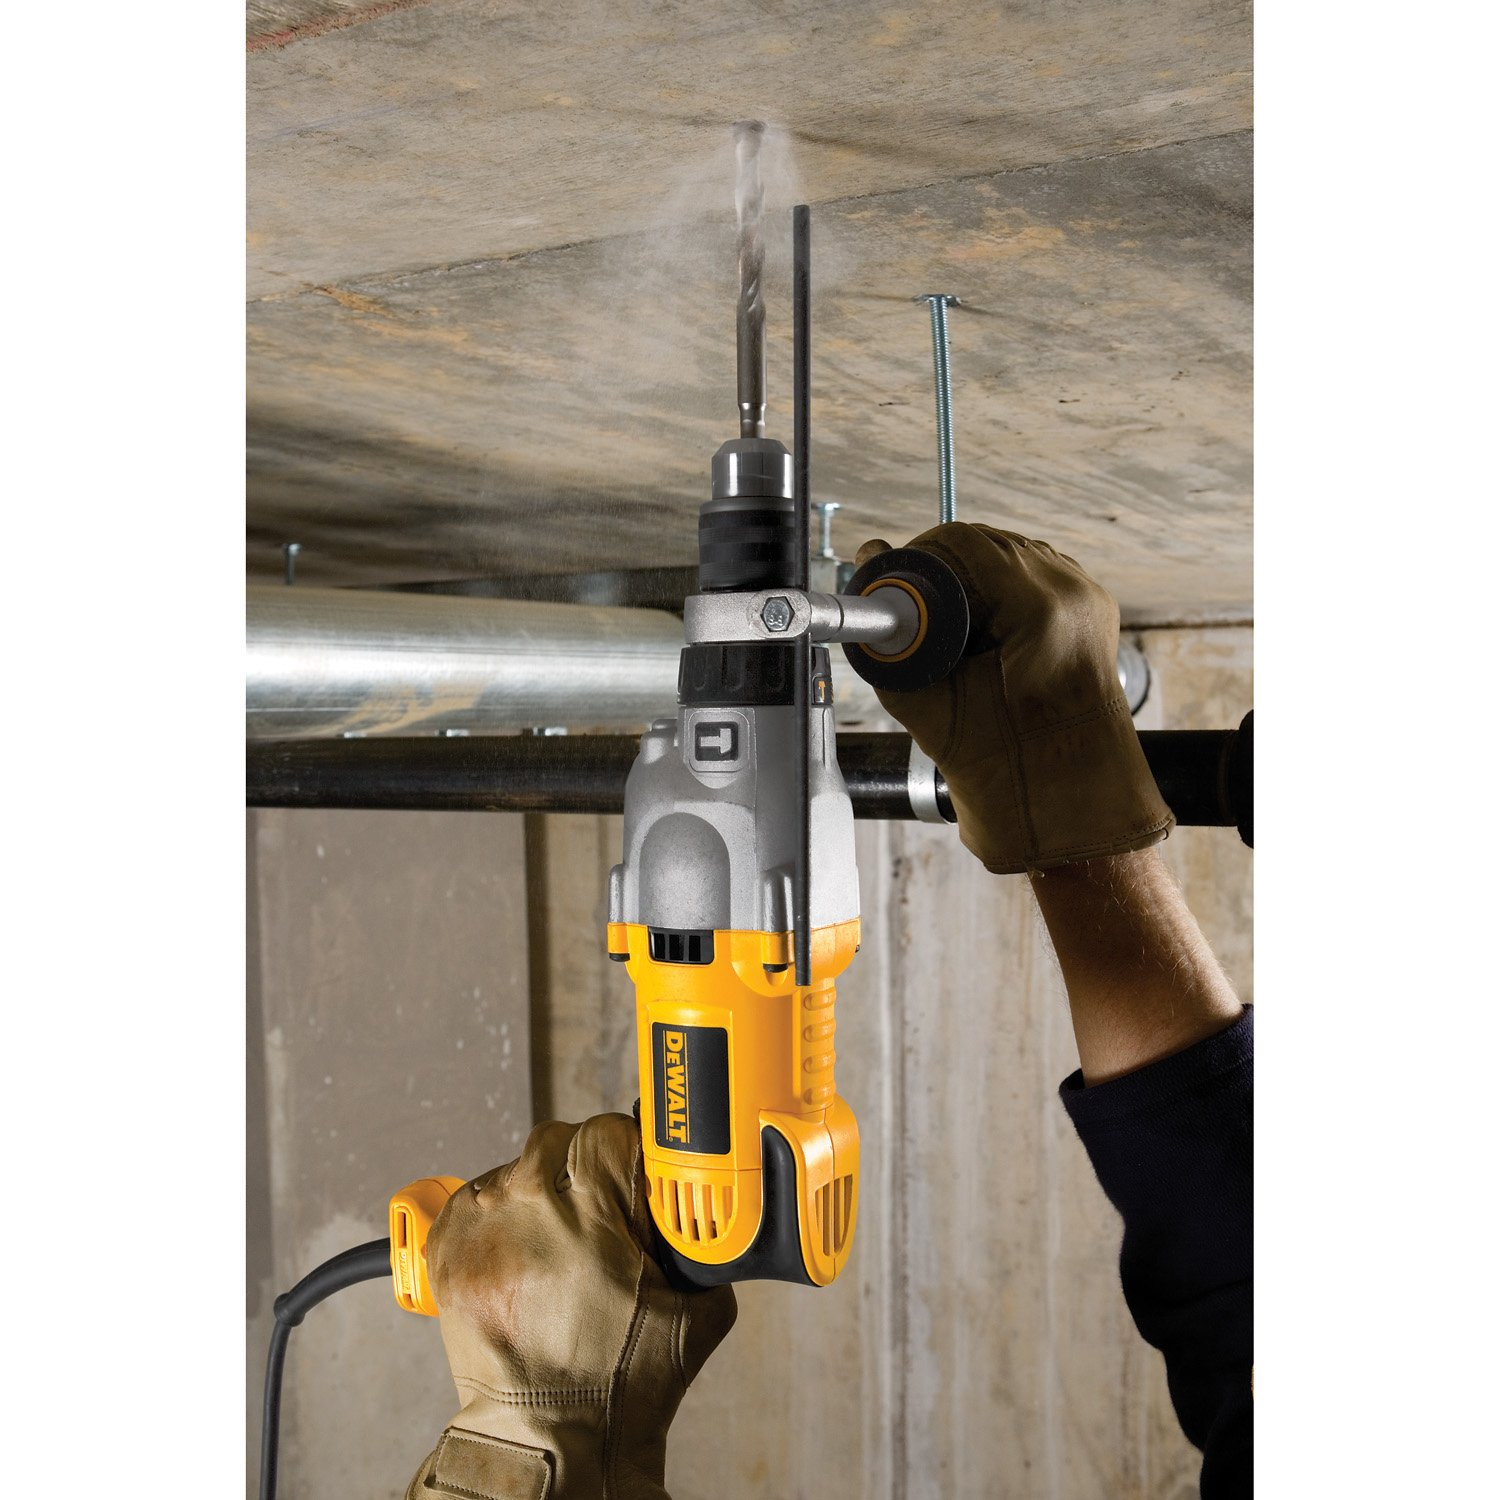 814UwgXwoiL._SL1500_ dewalt dwd520 1 2 inch vsr pistol grip hammerdrill power pistol  at nearapp.co